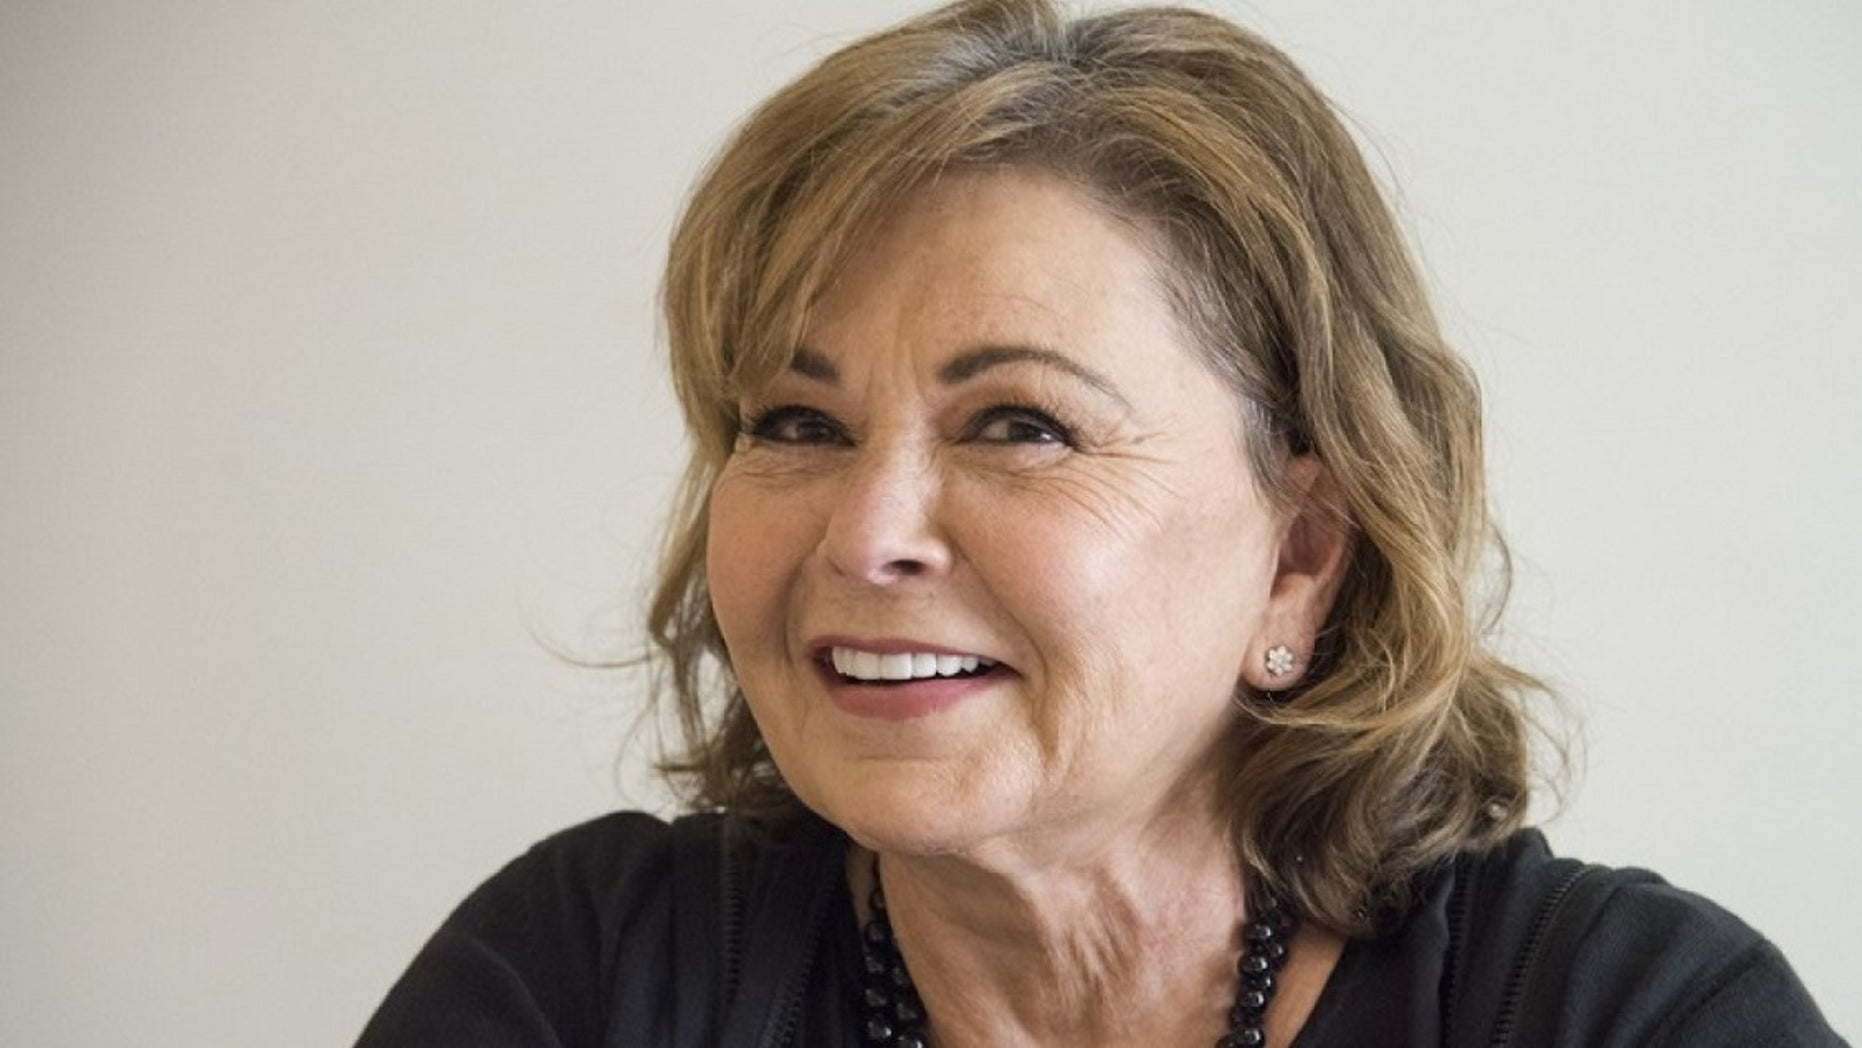 Roseanne Barr Is 'Fine' After Heart Attack Rumors Go Viral